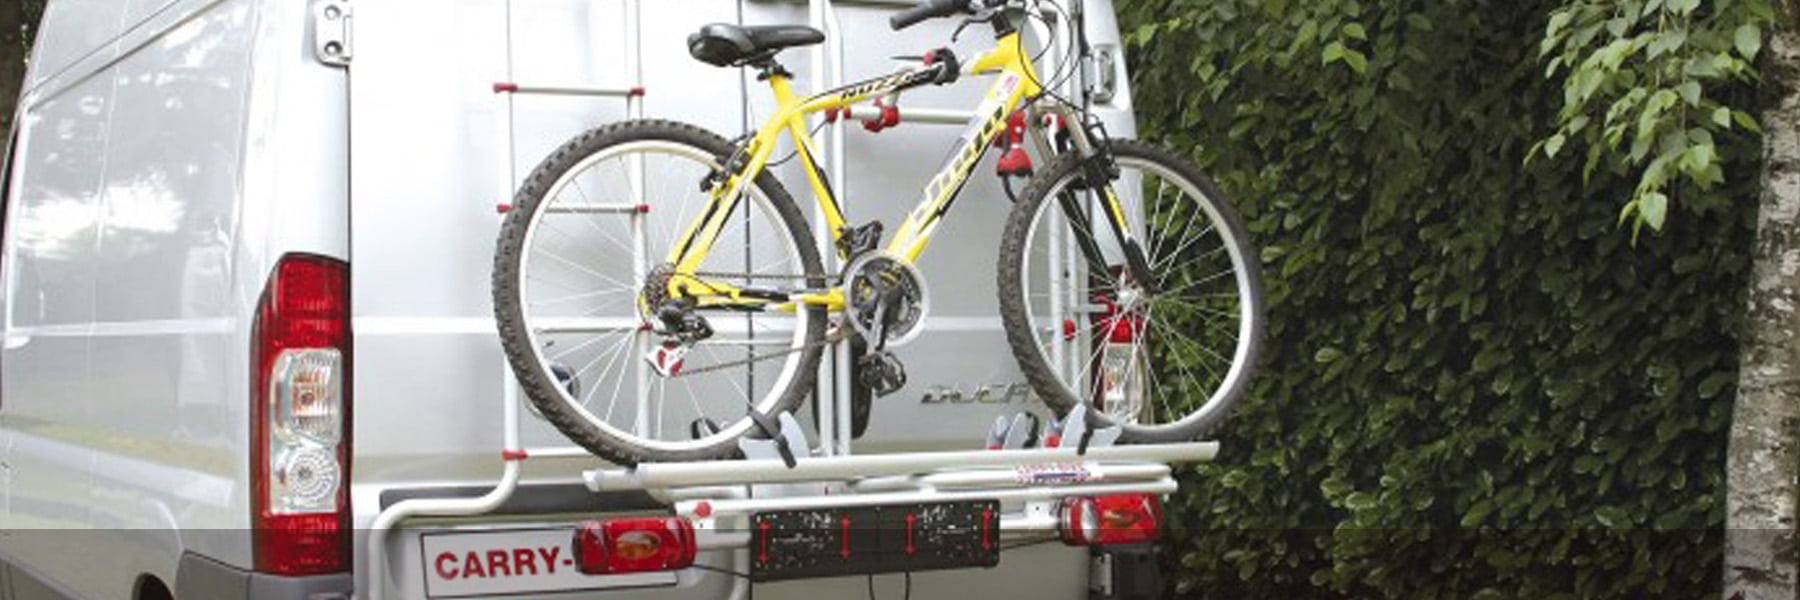 Fiamma Bike Racks, Motorhome Accessories